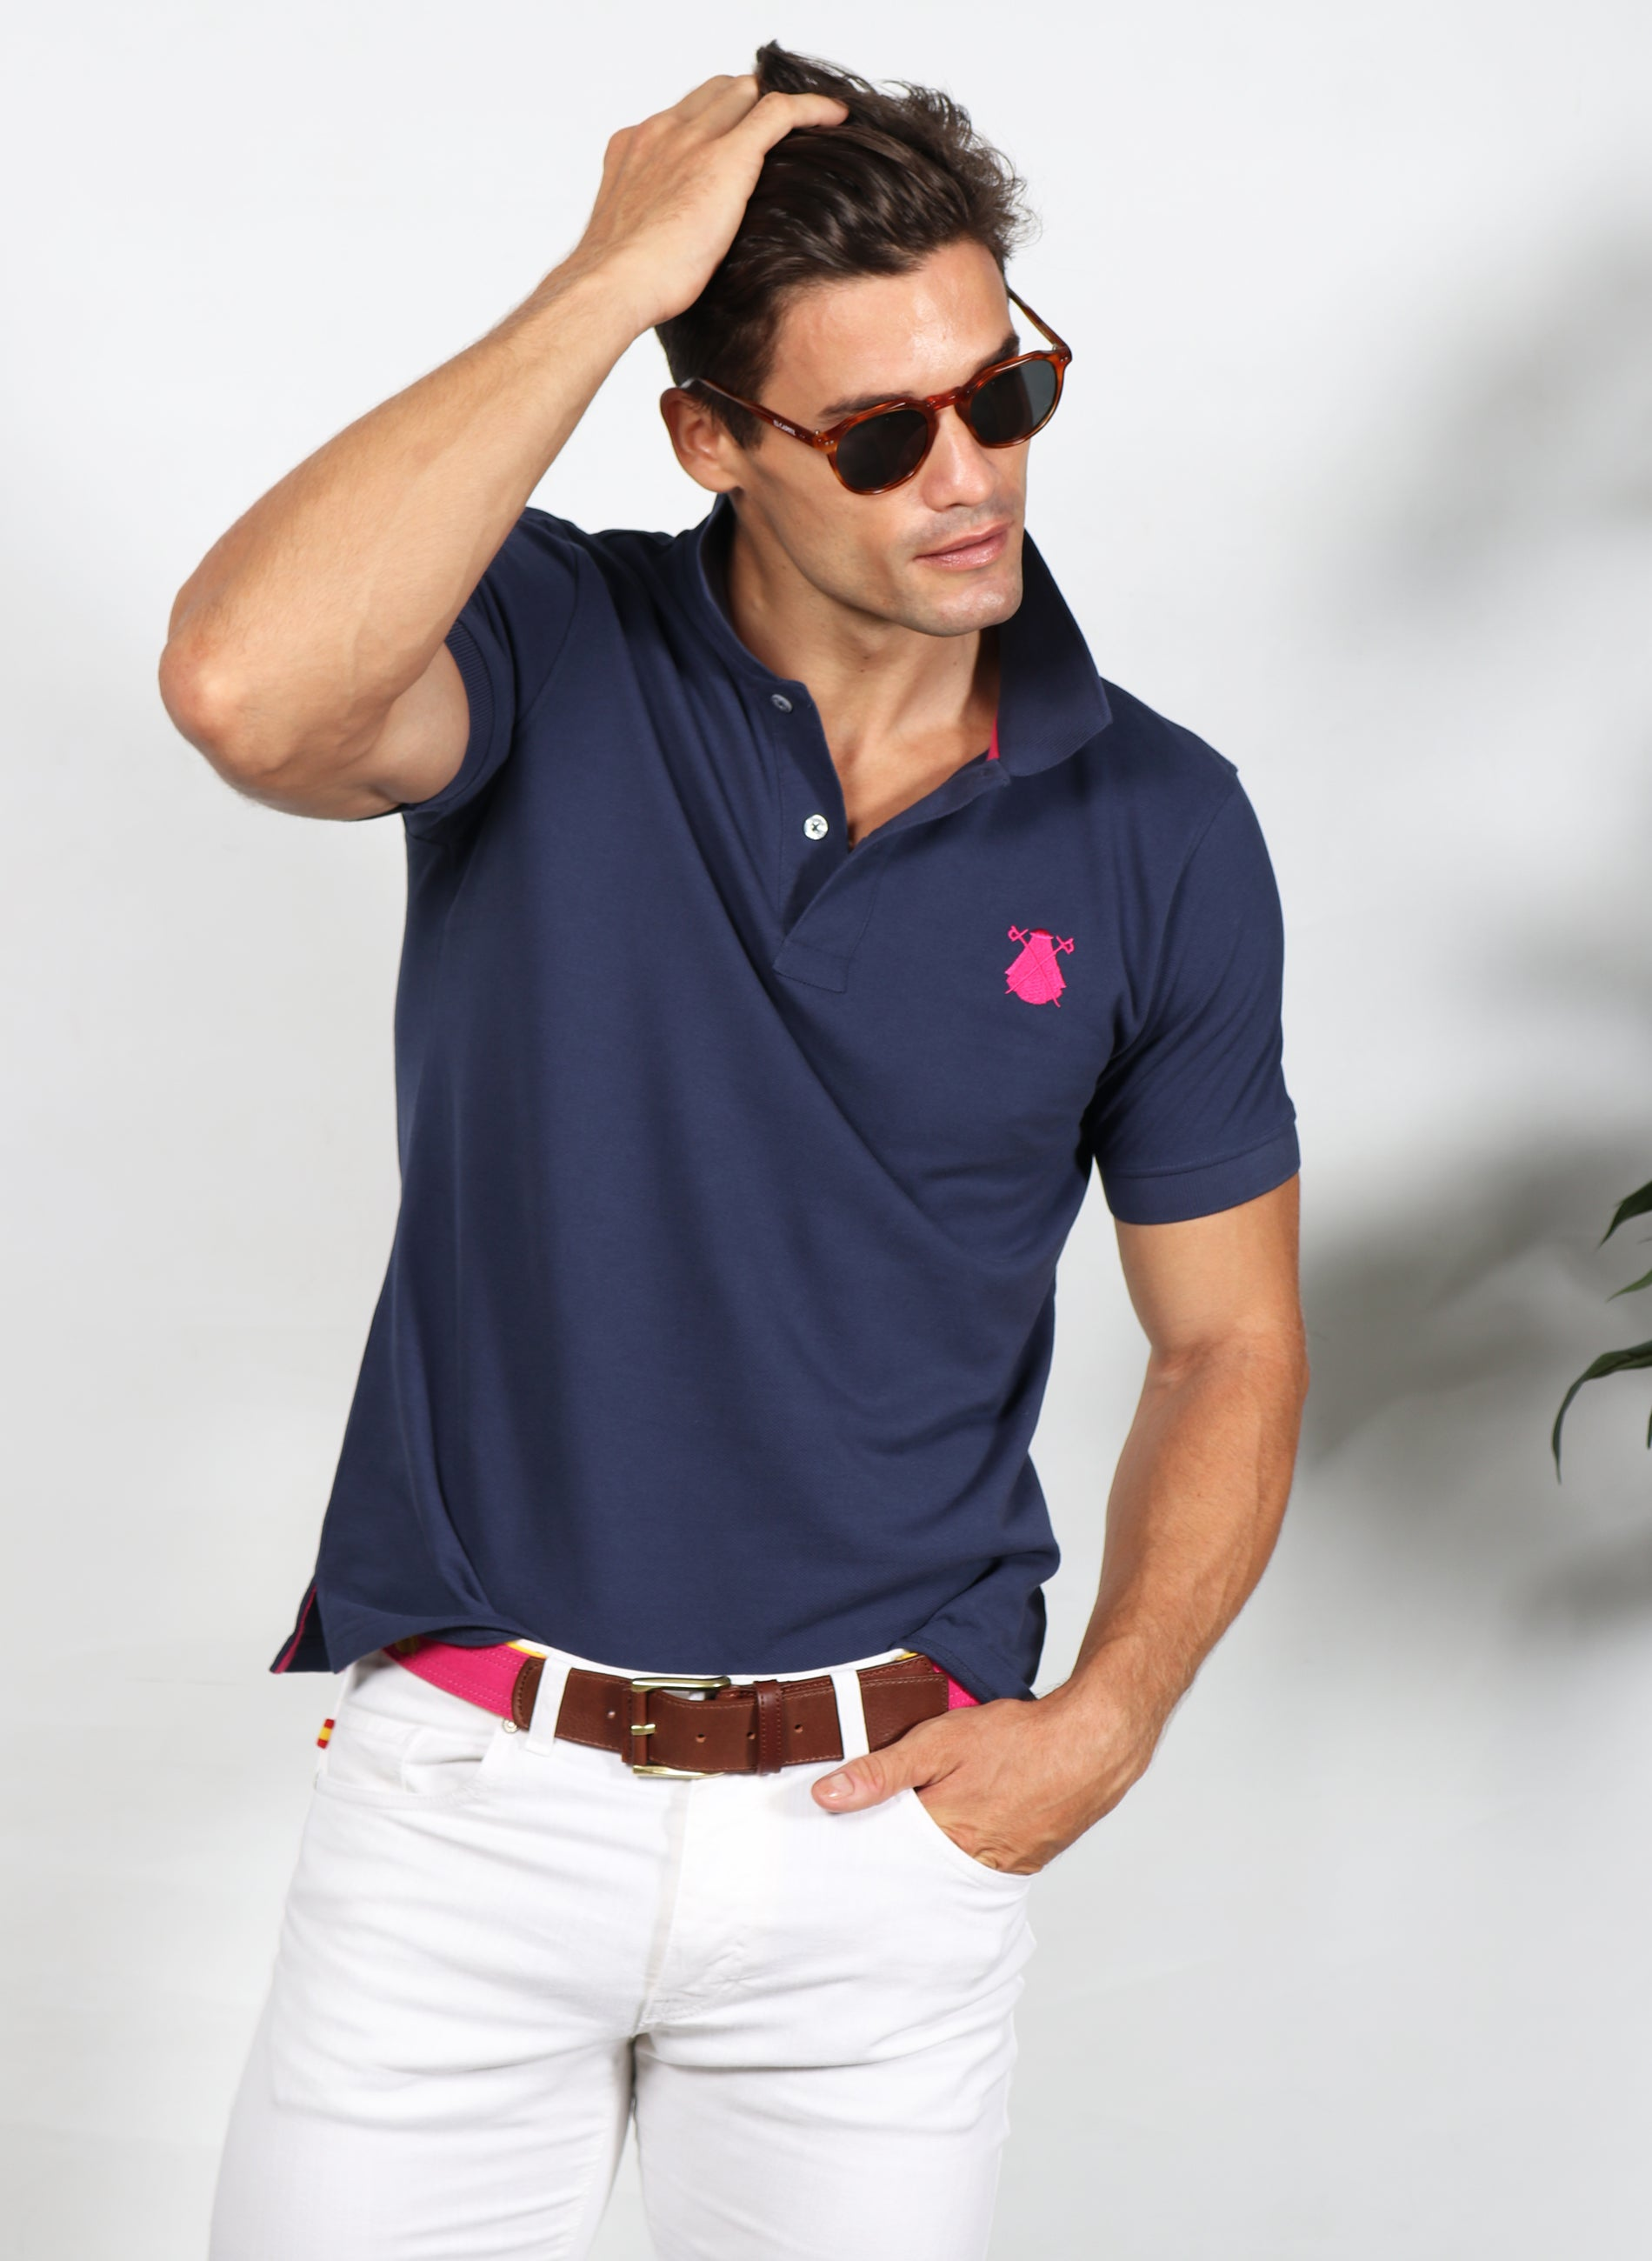 NAVY BLUE NEW COOL POLO